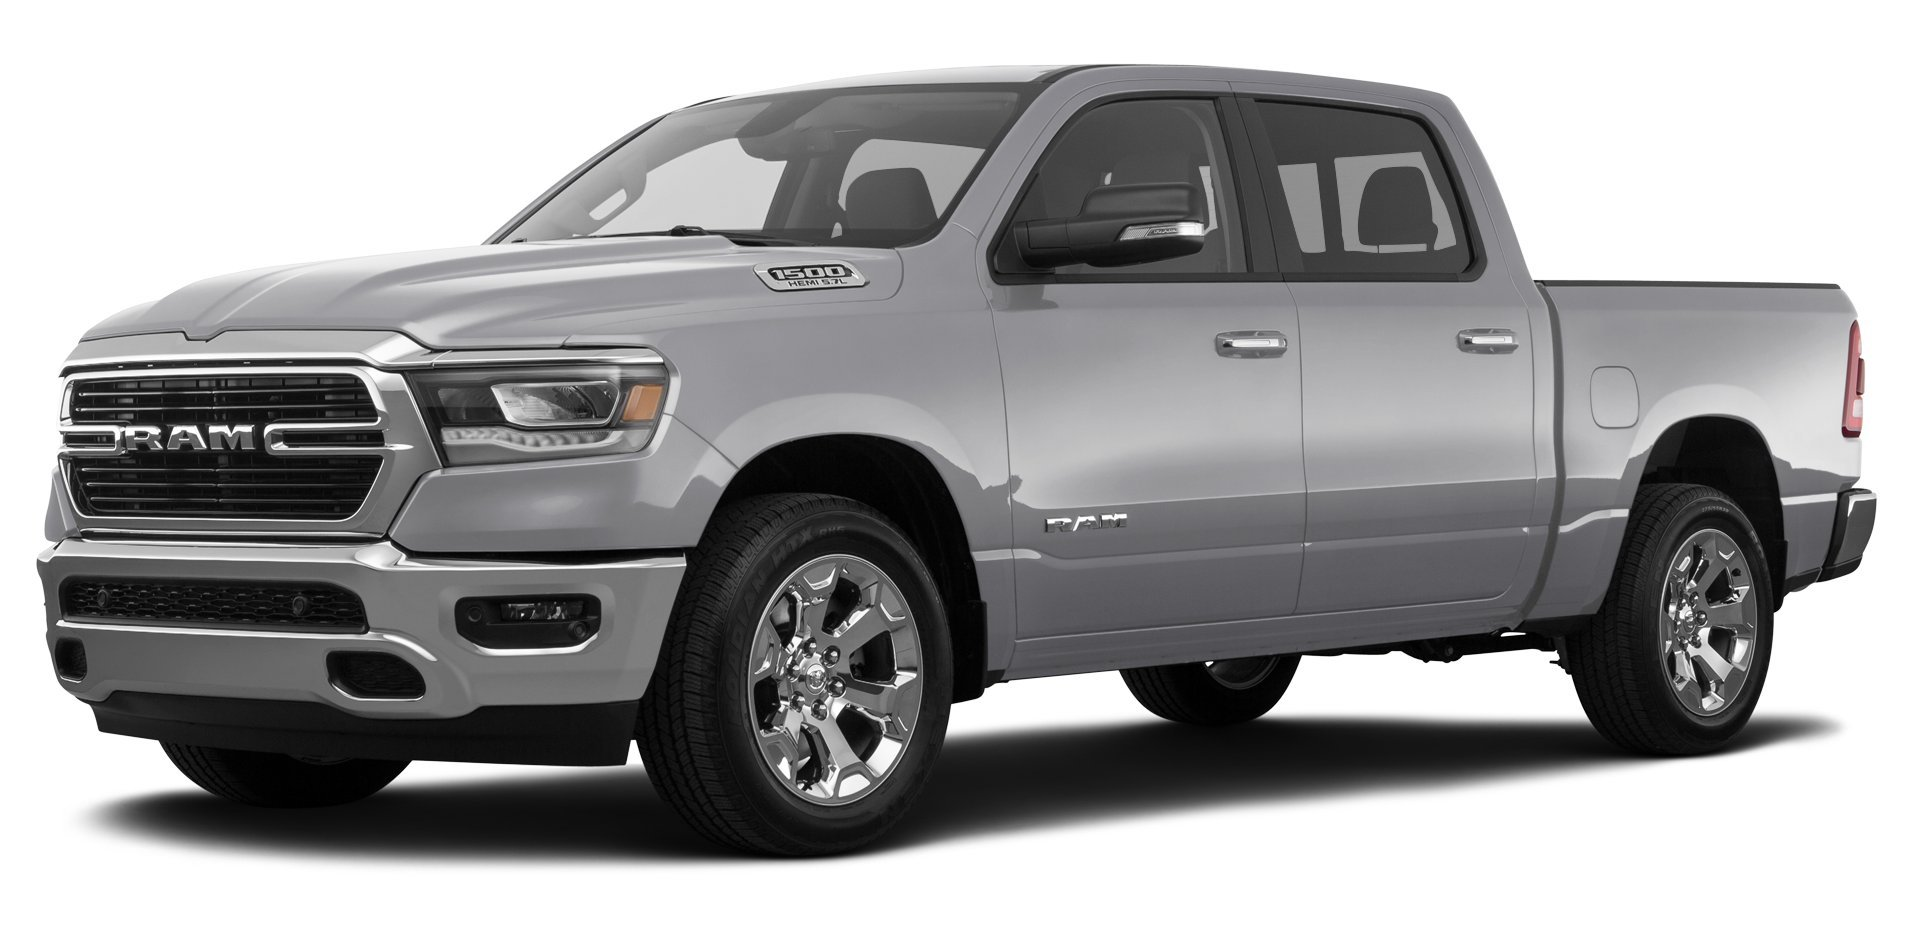 2019 Ram 1500 Reviews Images And Specs Vehicles 1970 Dodge Truck Tow Big Horn Lone Star 4x2 Crew Cab 57